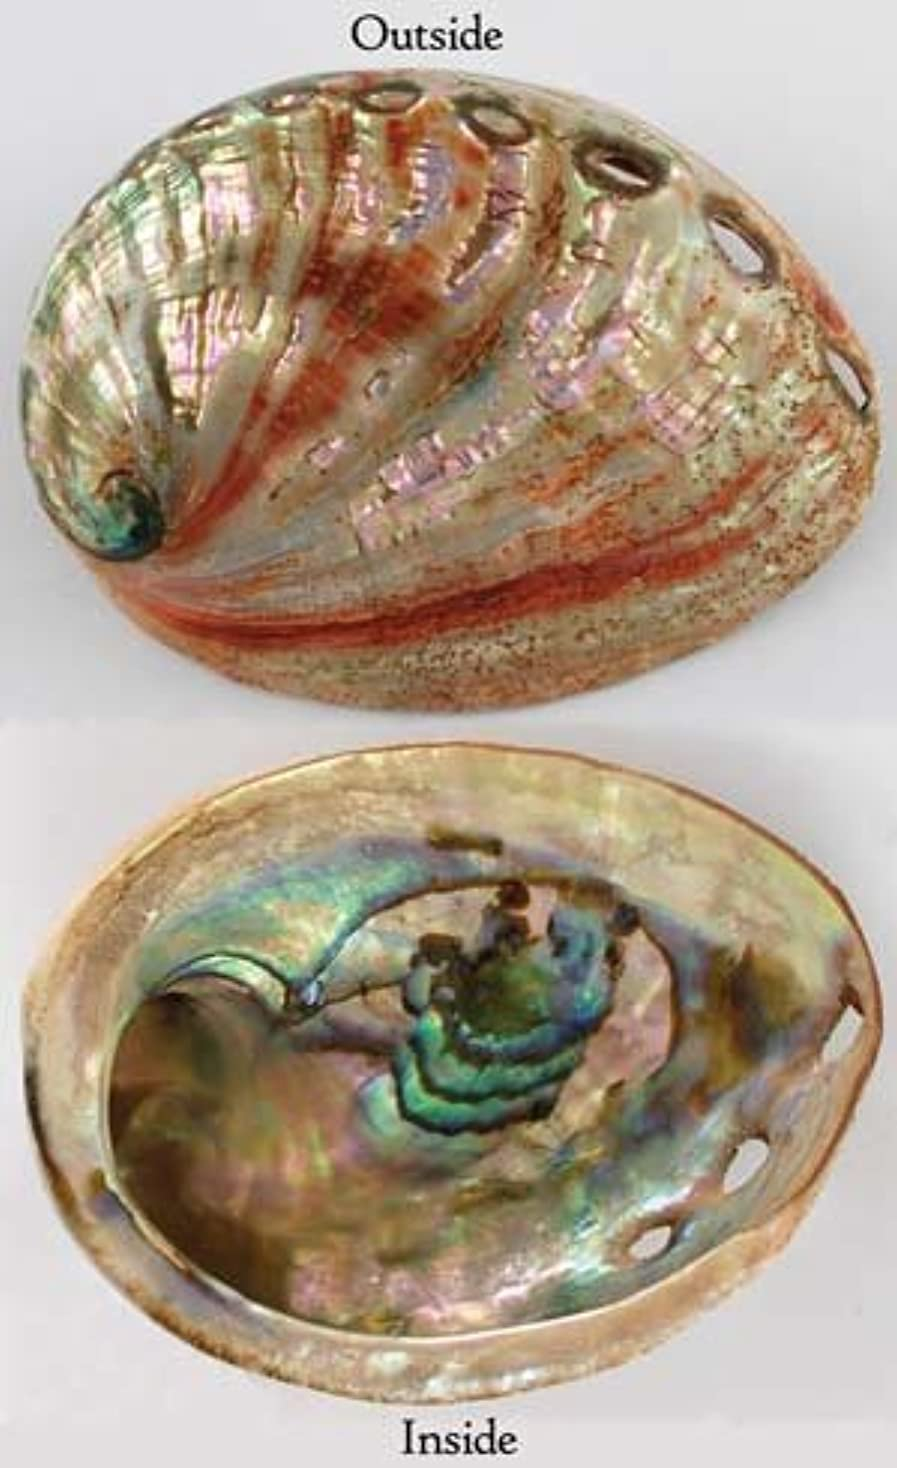 落ち着く維持するキャッチRed Abalone Shell Incense Burner Polished